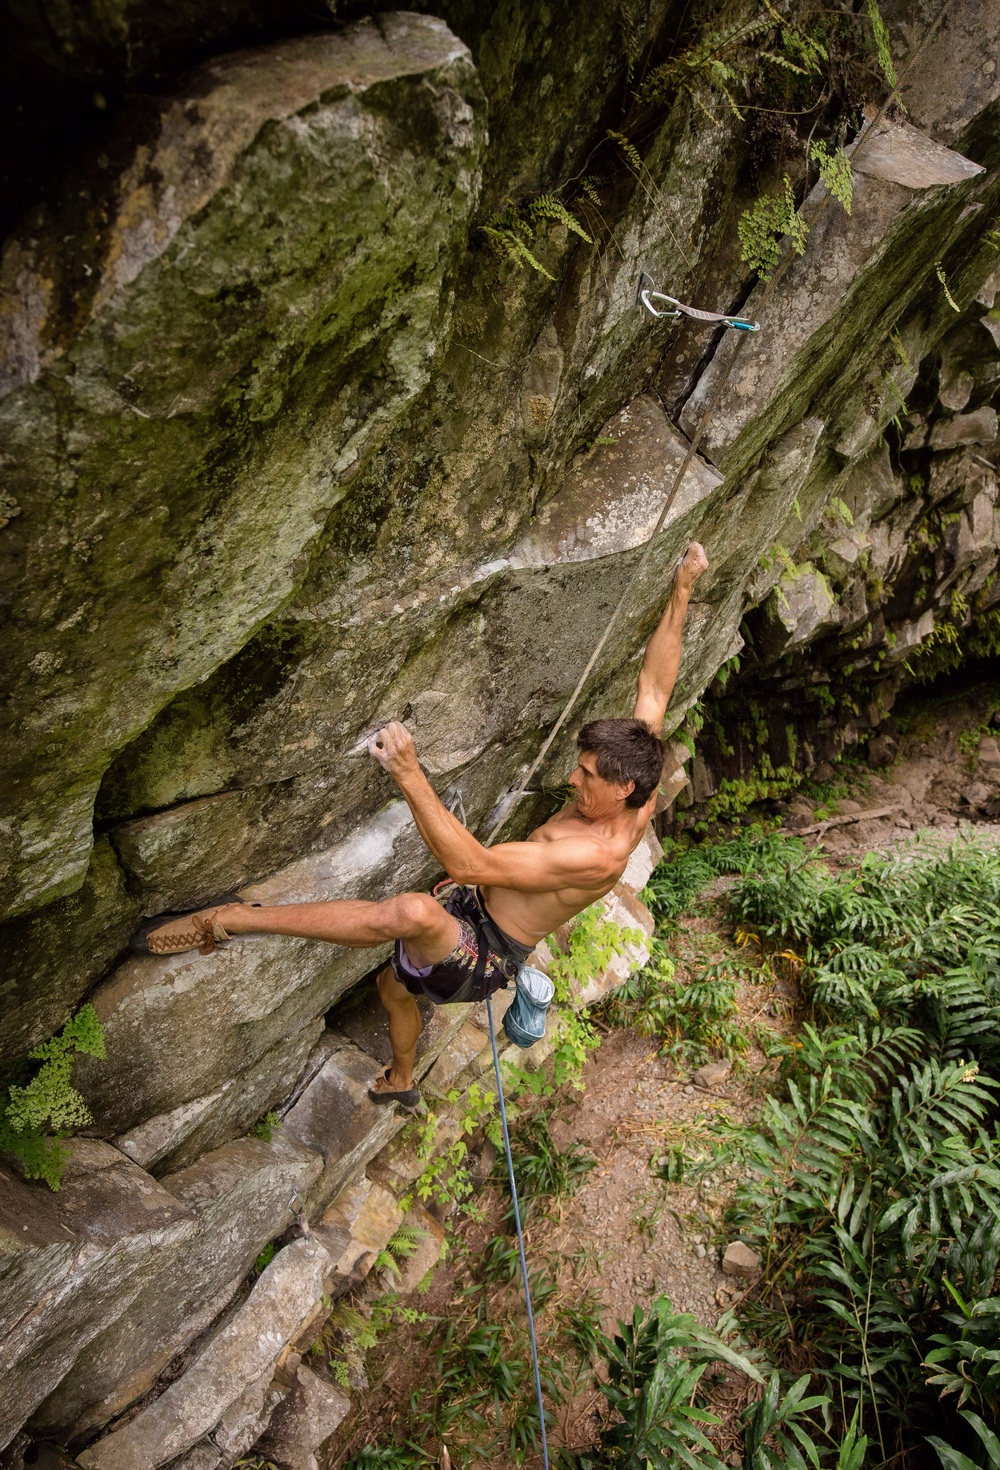 Jeff sussing out the beta on Makawao Pig Hunt (5.13d). PC: Drew